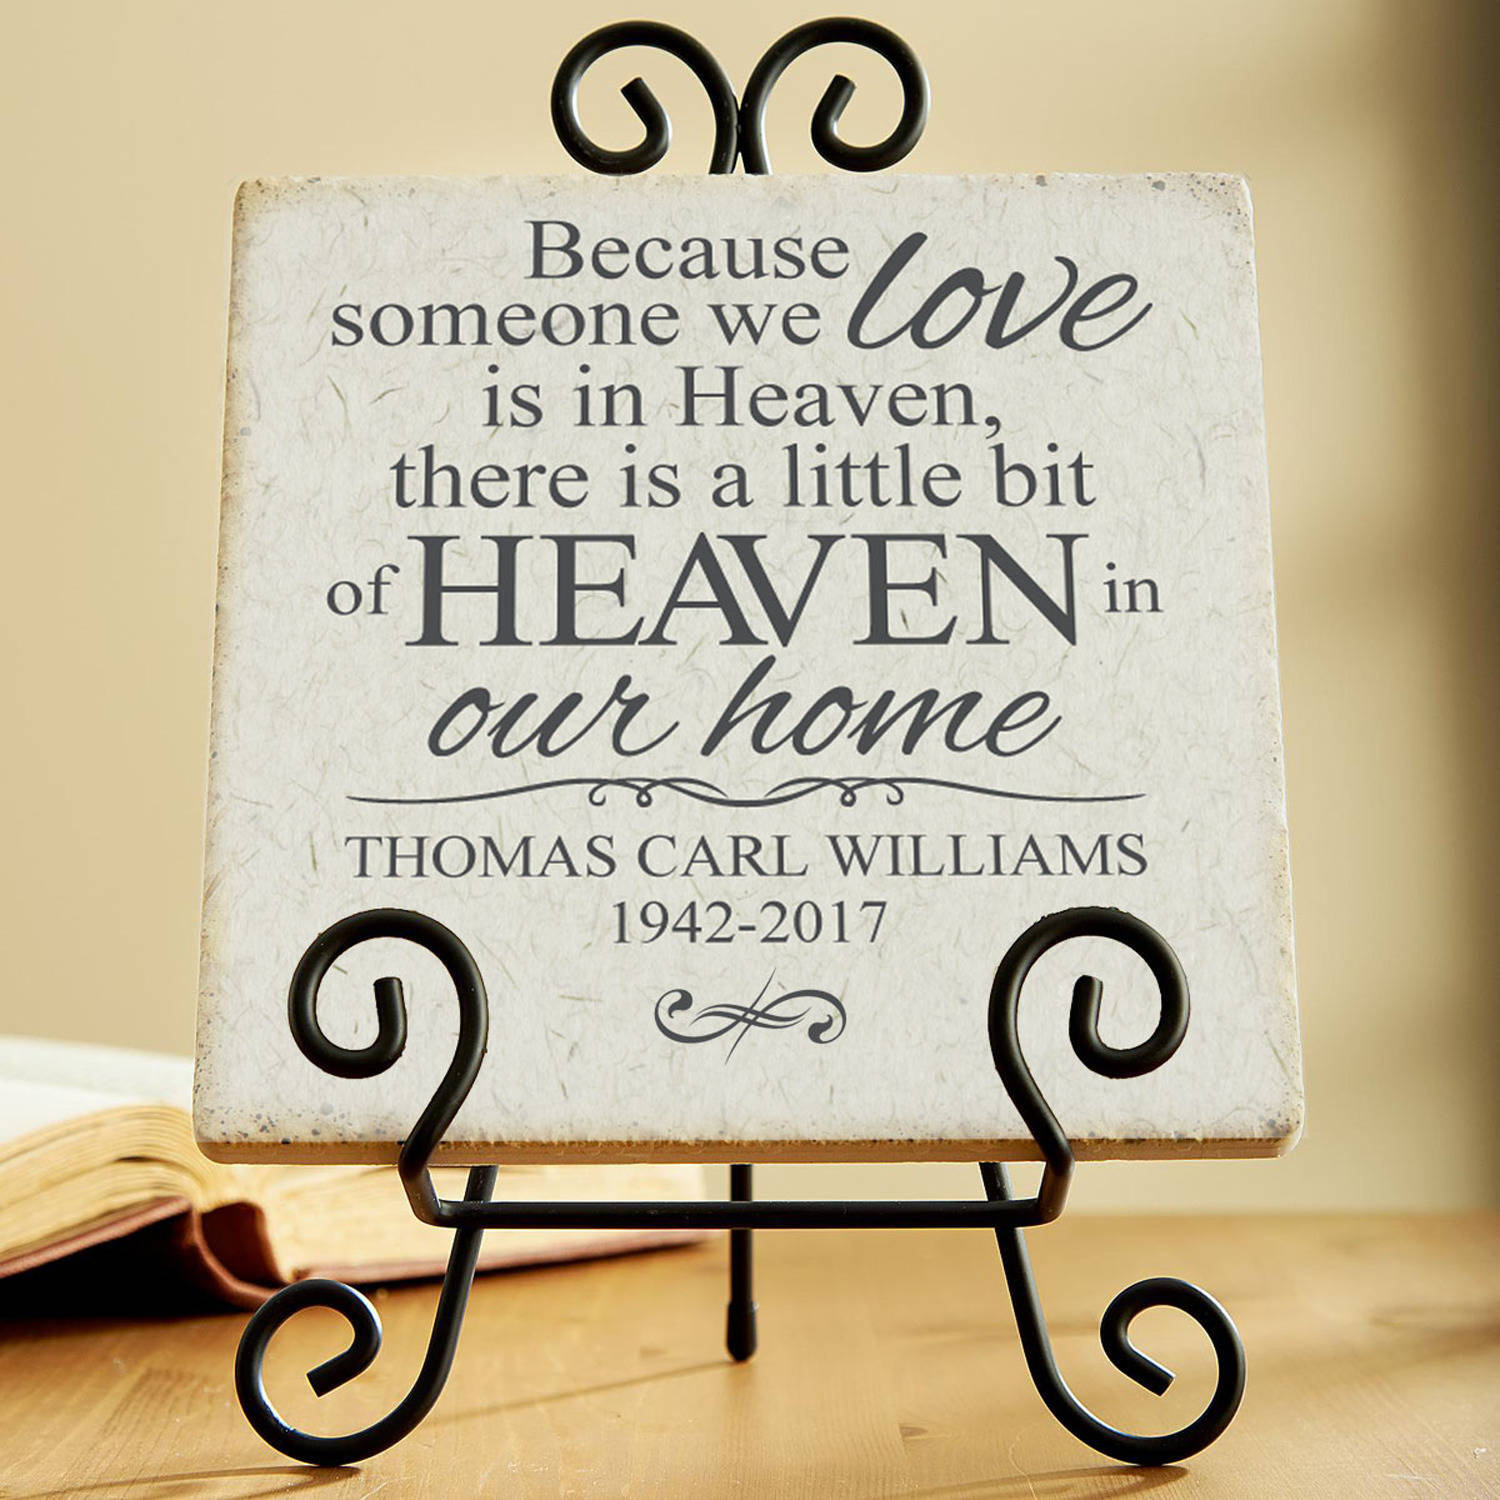 Personalized For Loved Ones in Heaven Tile